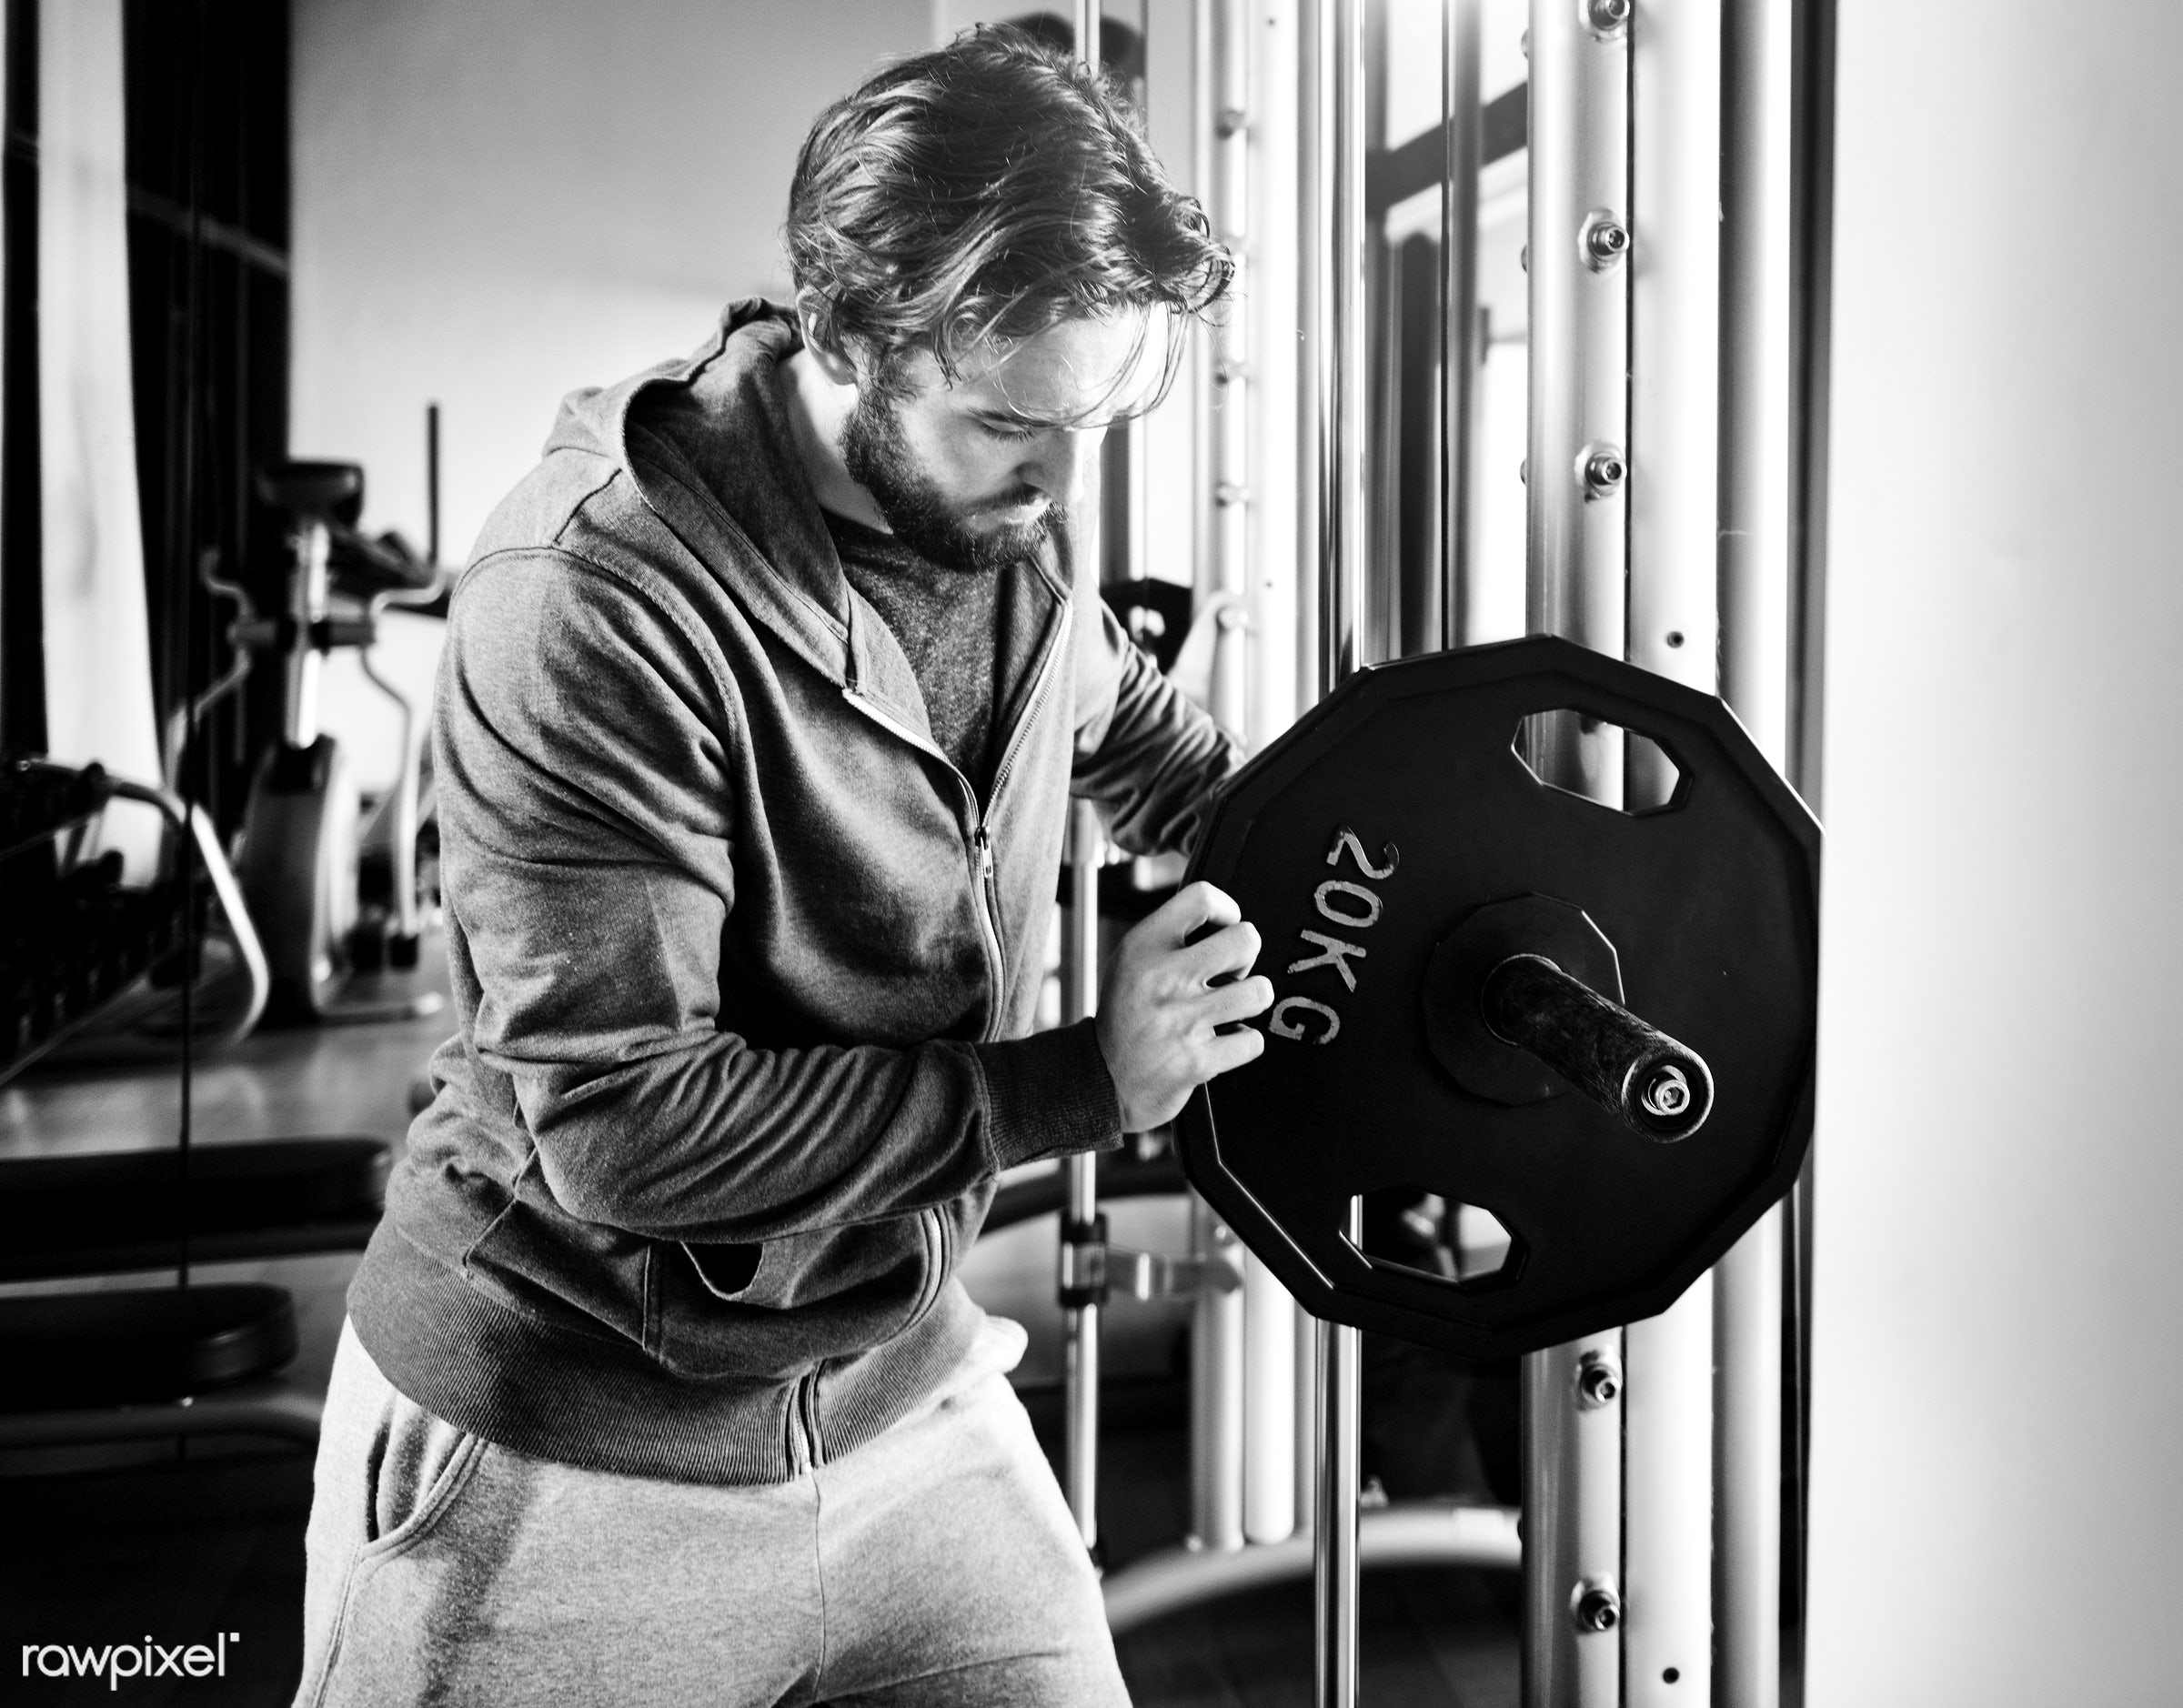 active, adult, athlete, athletic, attractive, barbell, body, bodybuilding, building, dumbbell, equipment, exercise, fit,...